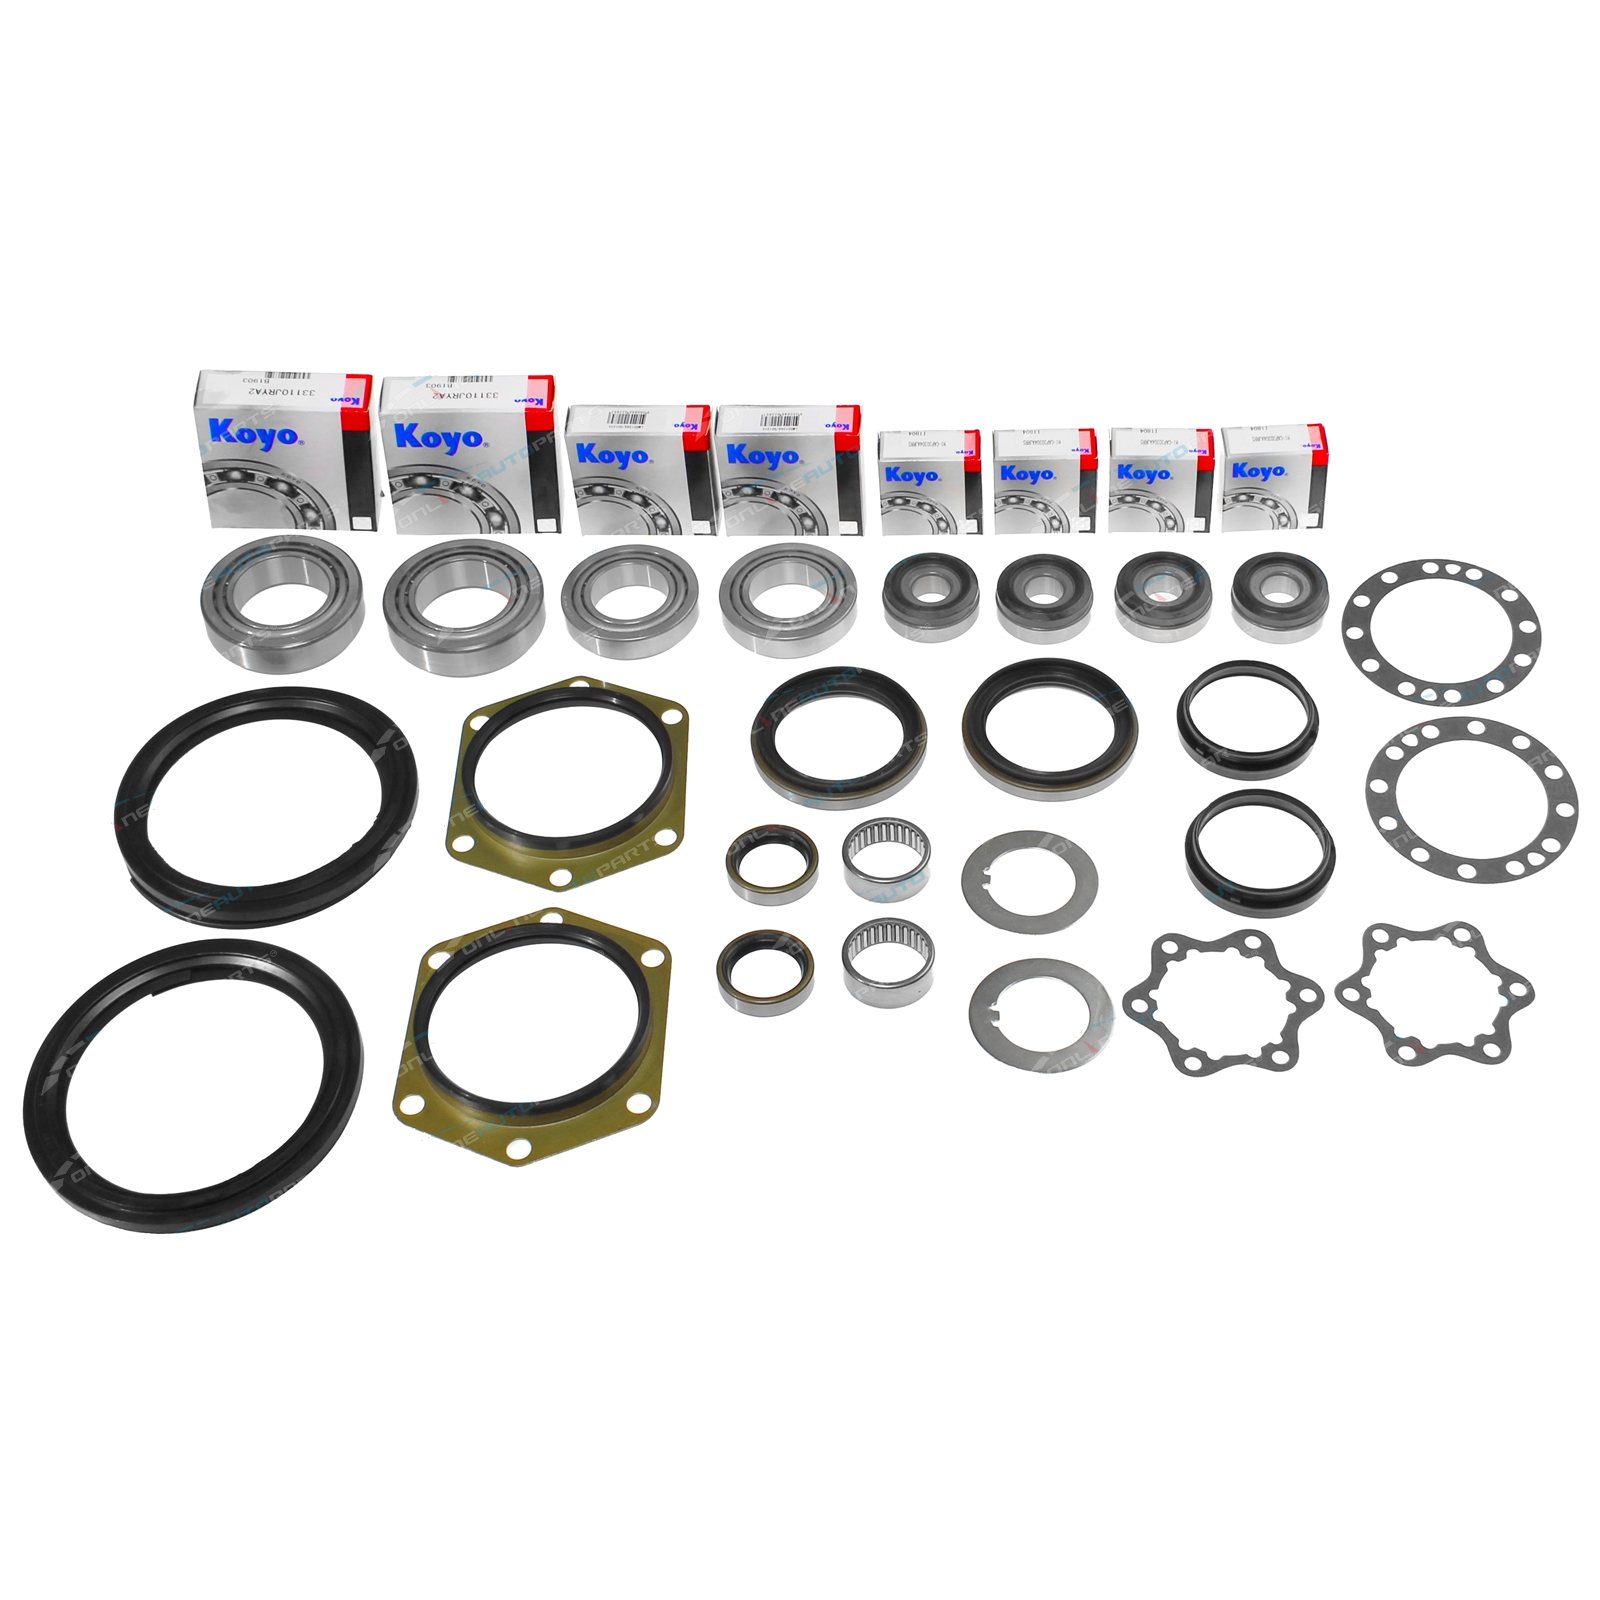 Ford Maverick DA Y60 Swivel Hub Kit with Wheel Bearings